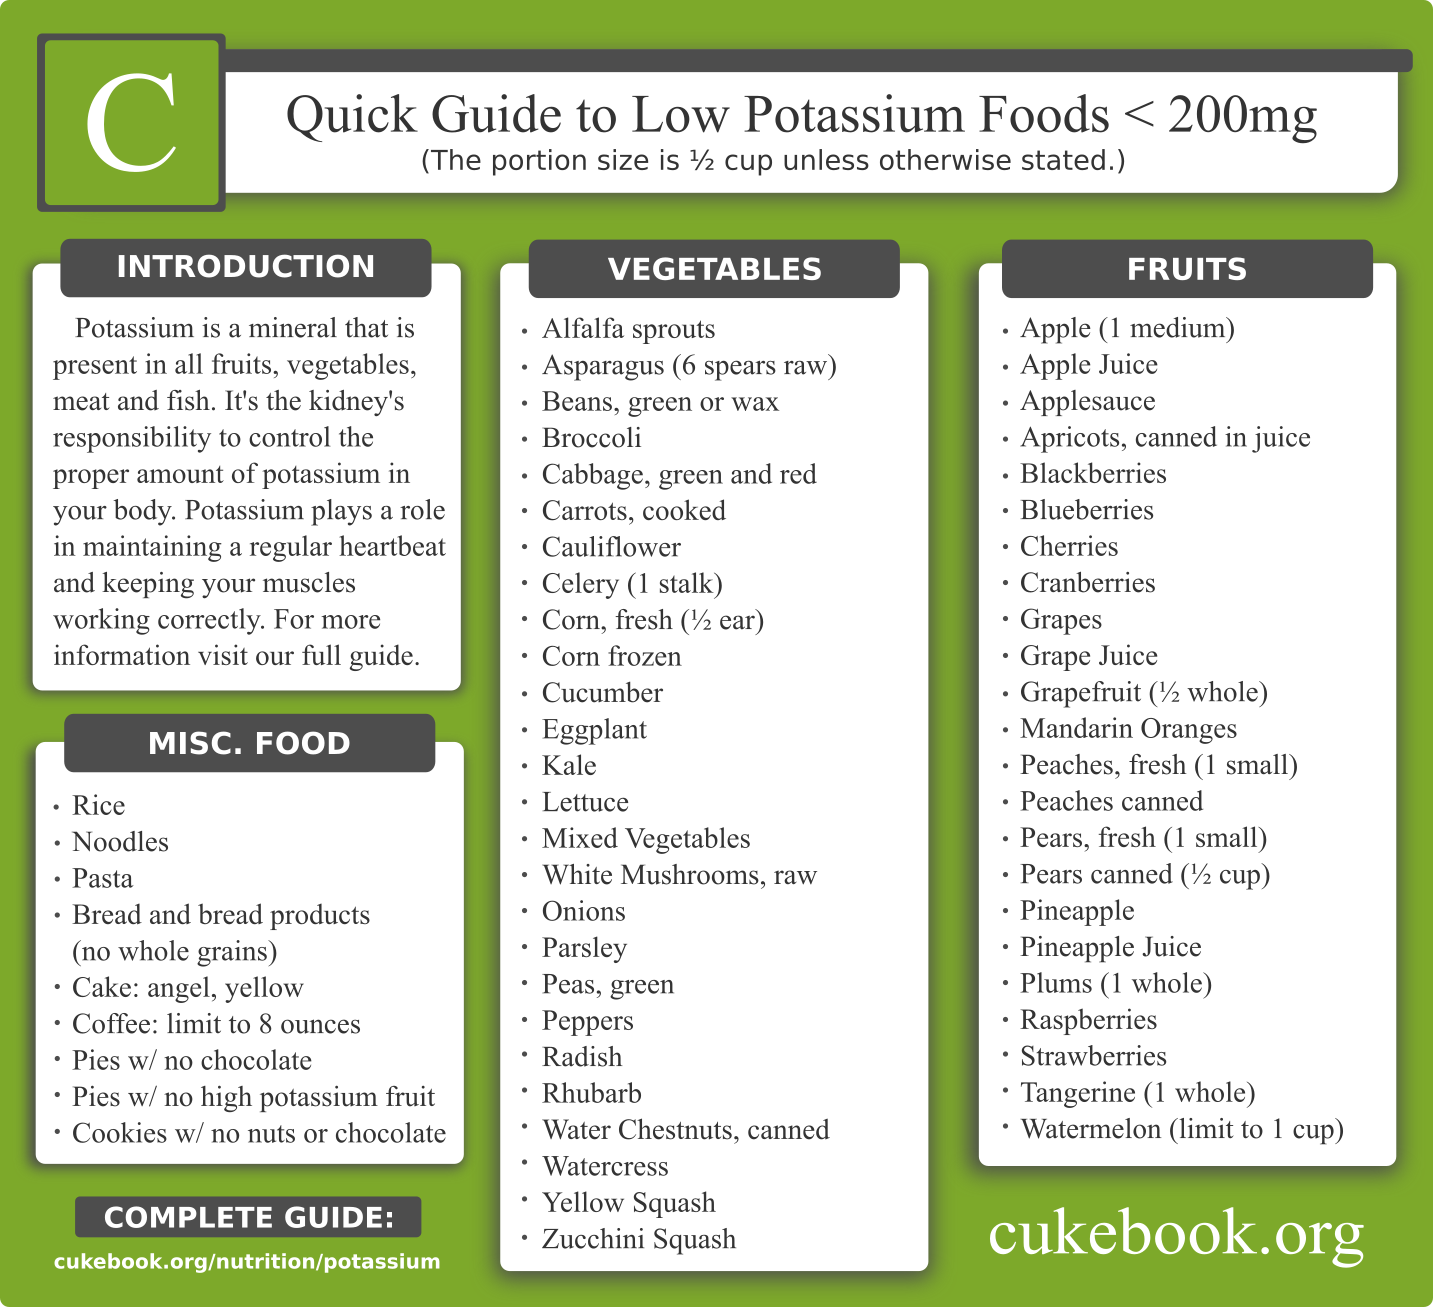 Quick guide to lowpotassium foods. On a low potassium